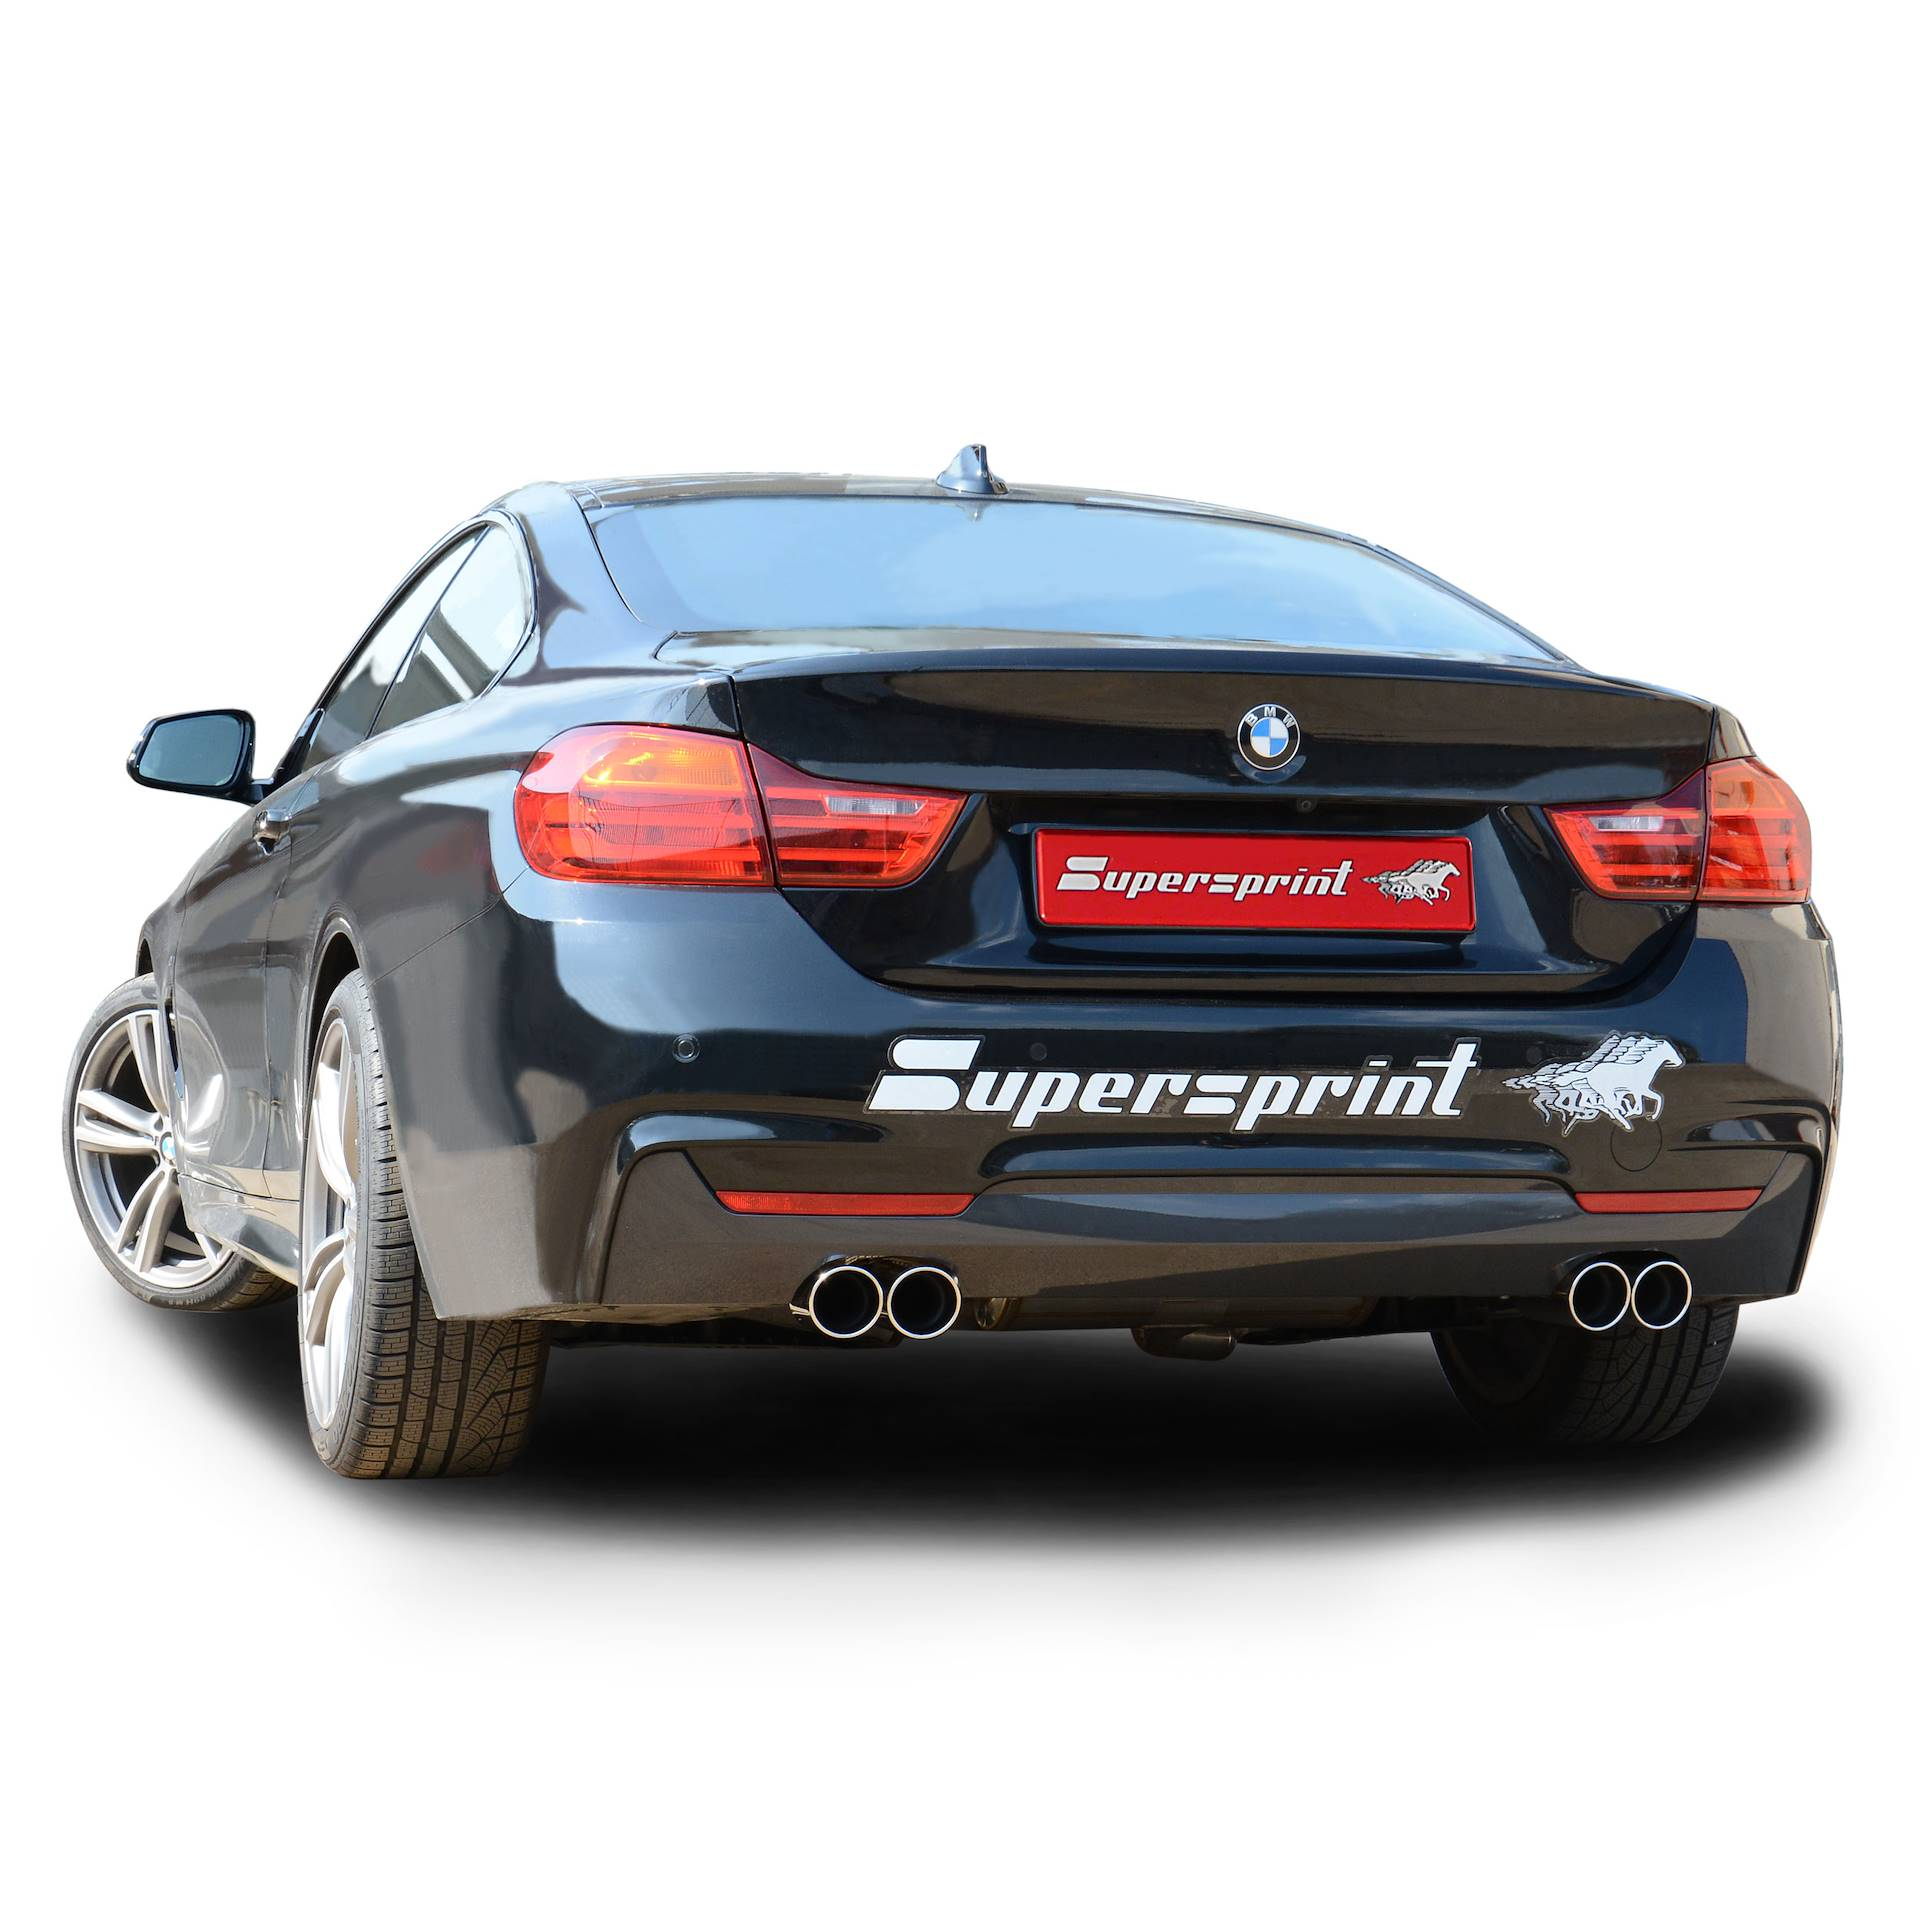 BMW - BMW F32 Coupè 420d (N47 - 184 Hp) 2013 -> 2015